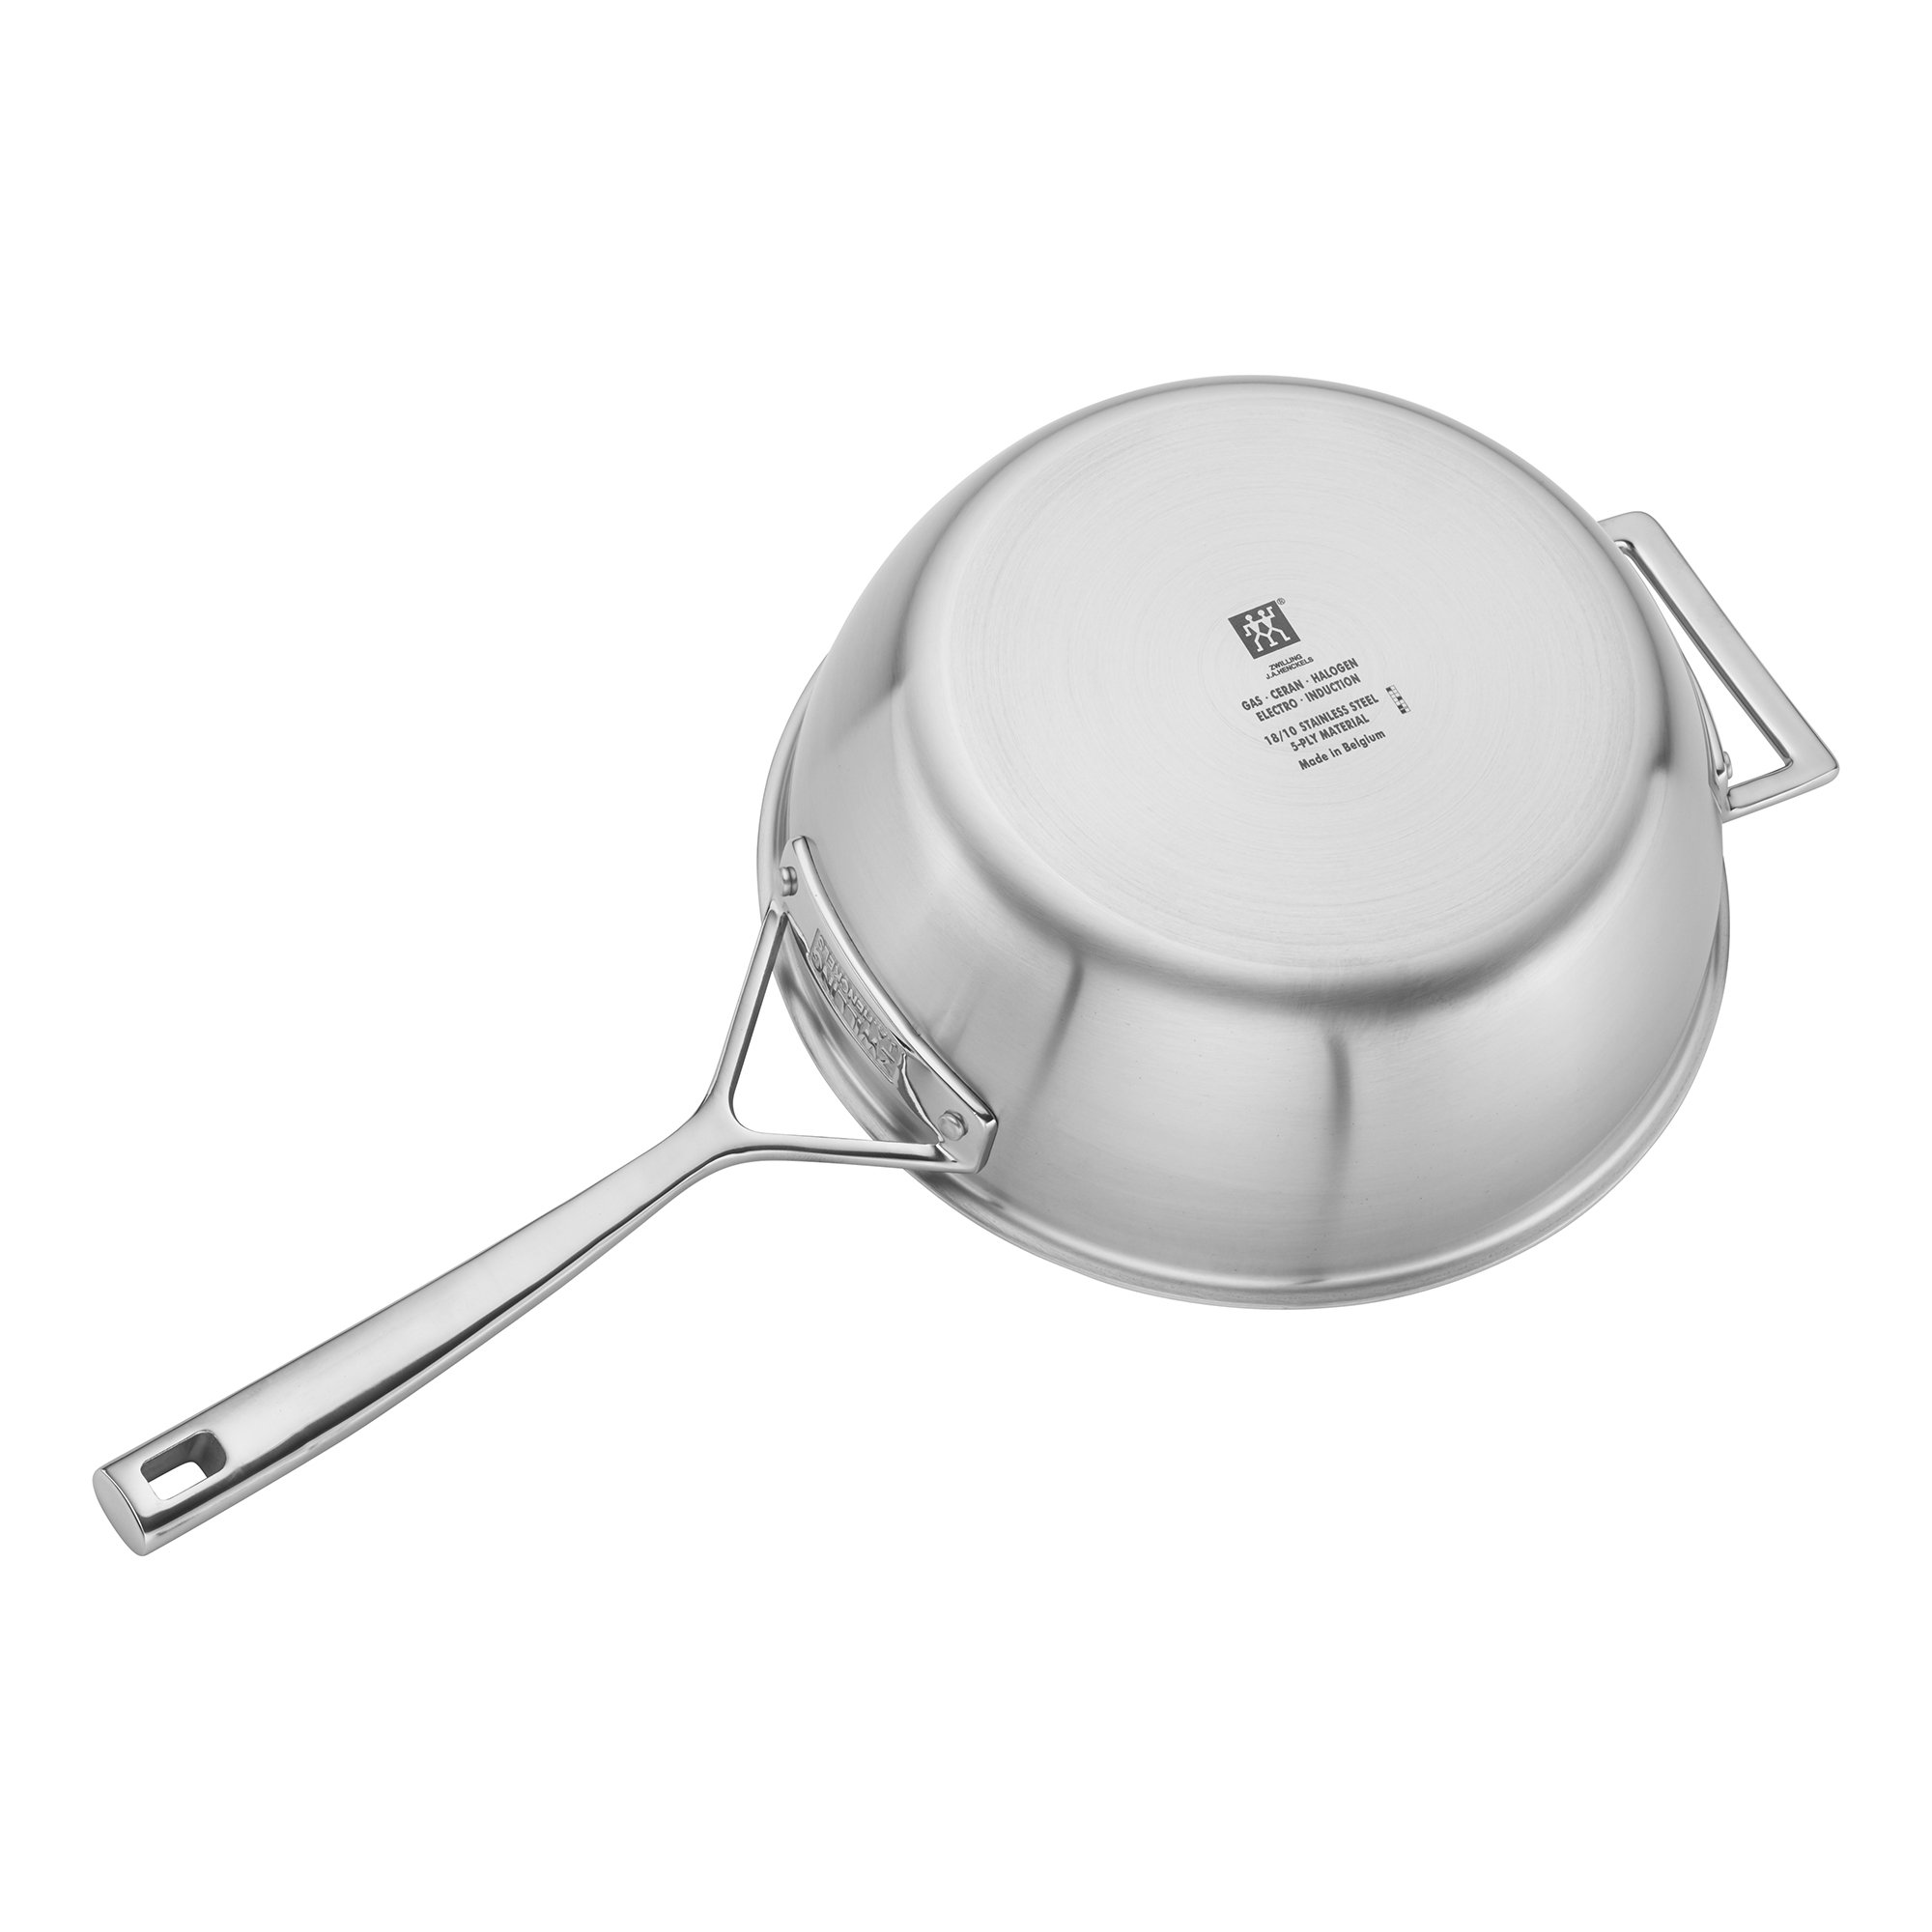 ZWILLING J.A. Henckels 66080-240 Saucier, 3.5 quart, Stainless Steel by ZWILLING J.A. Henckels (Image #2)